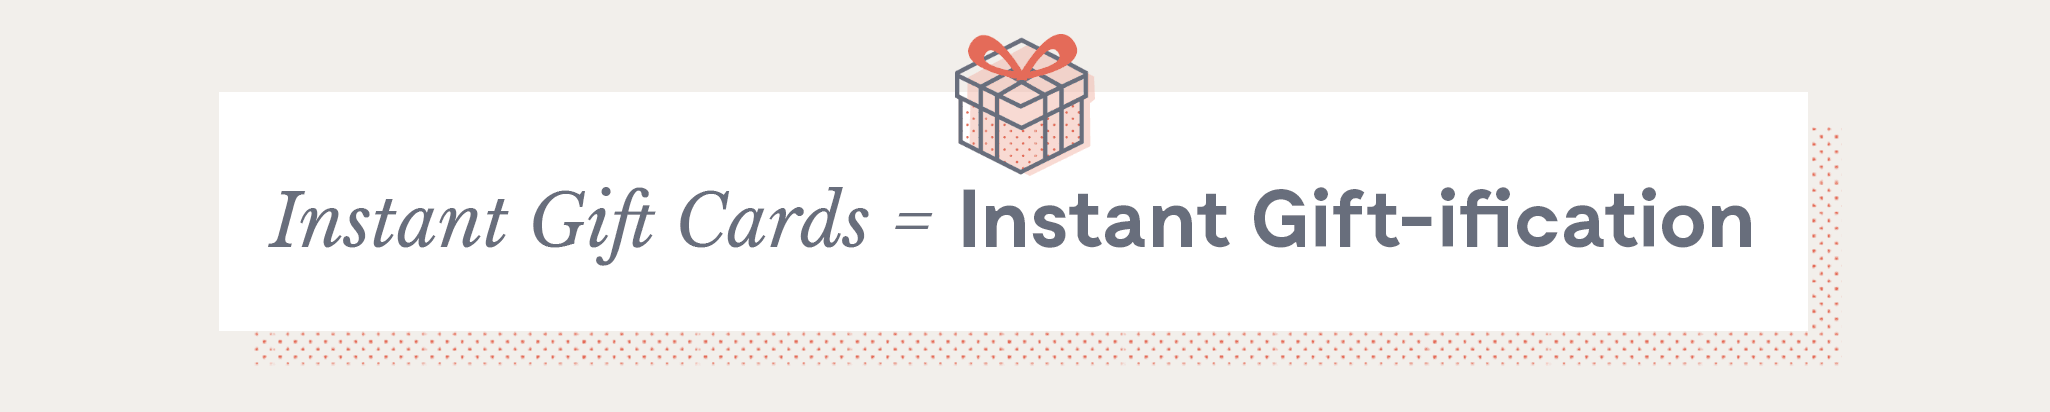 Instant Gift Cards = Instant Gift-ification